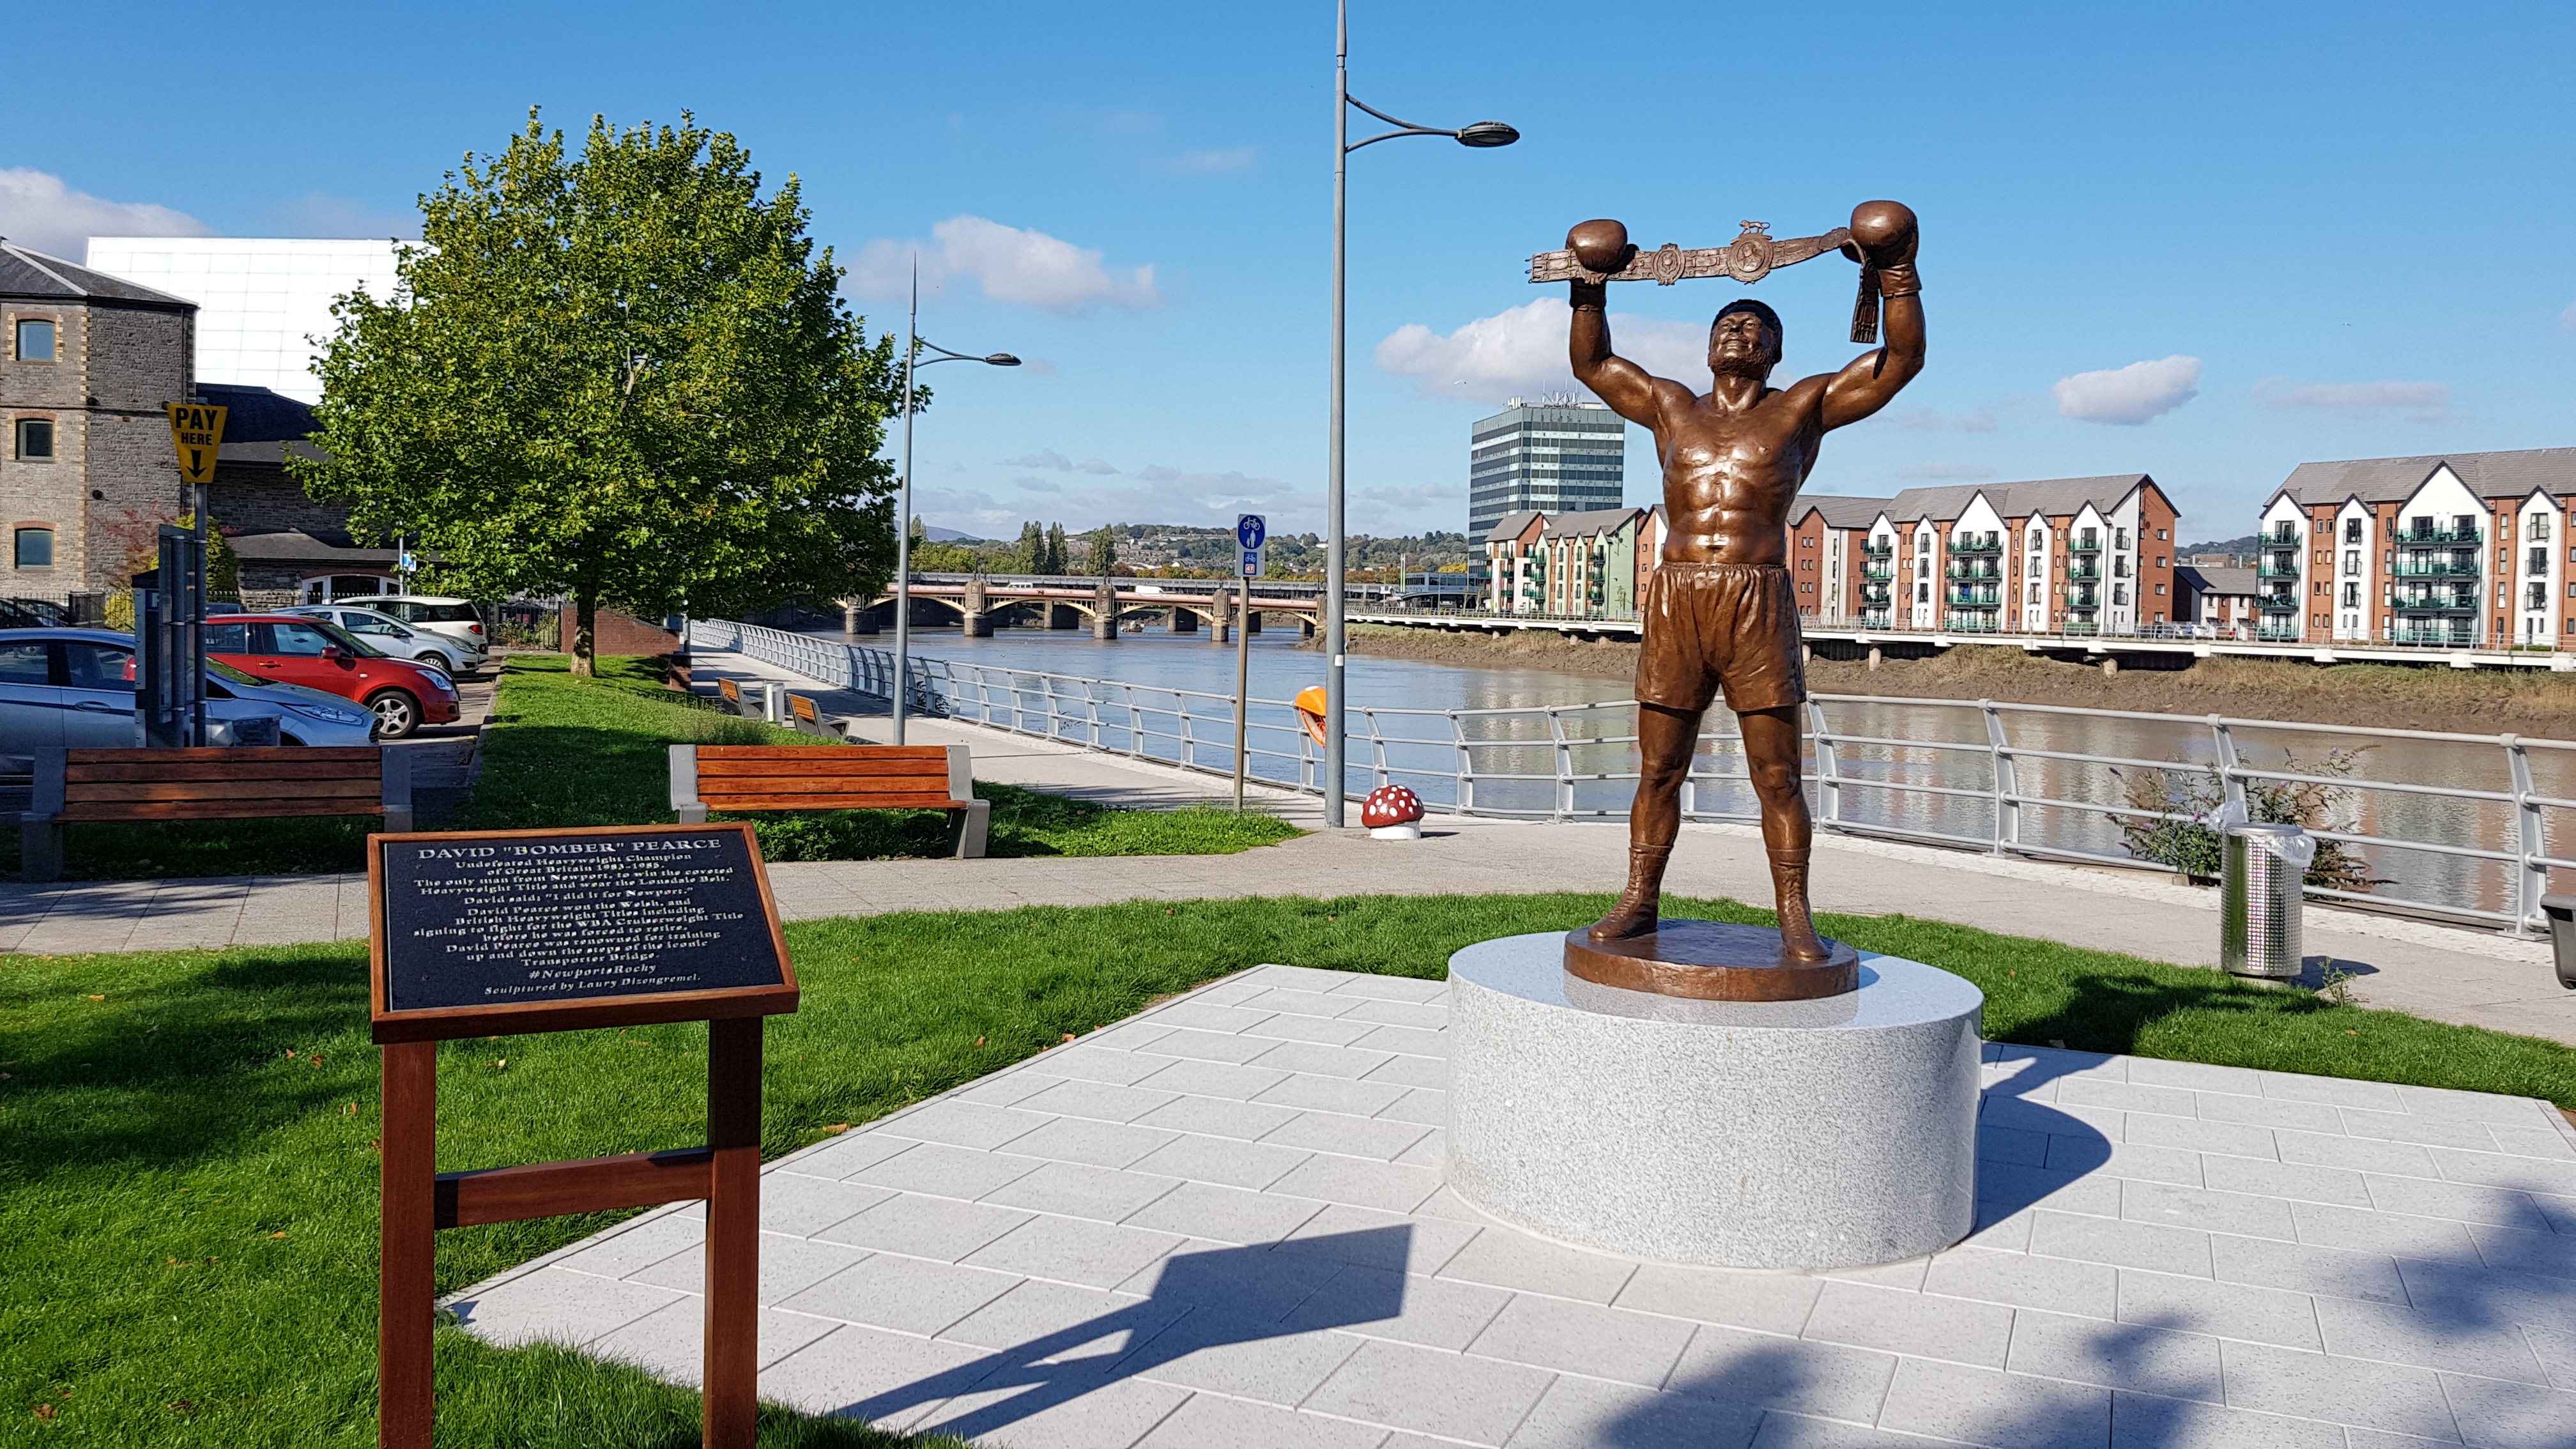 Bronze Sculpture of David 'Bomber' Pearce holding his belt aloft by Laury Dizengreme against blue skies